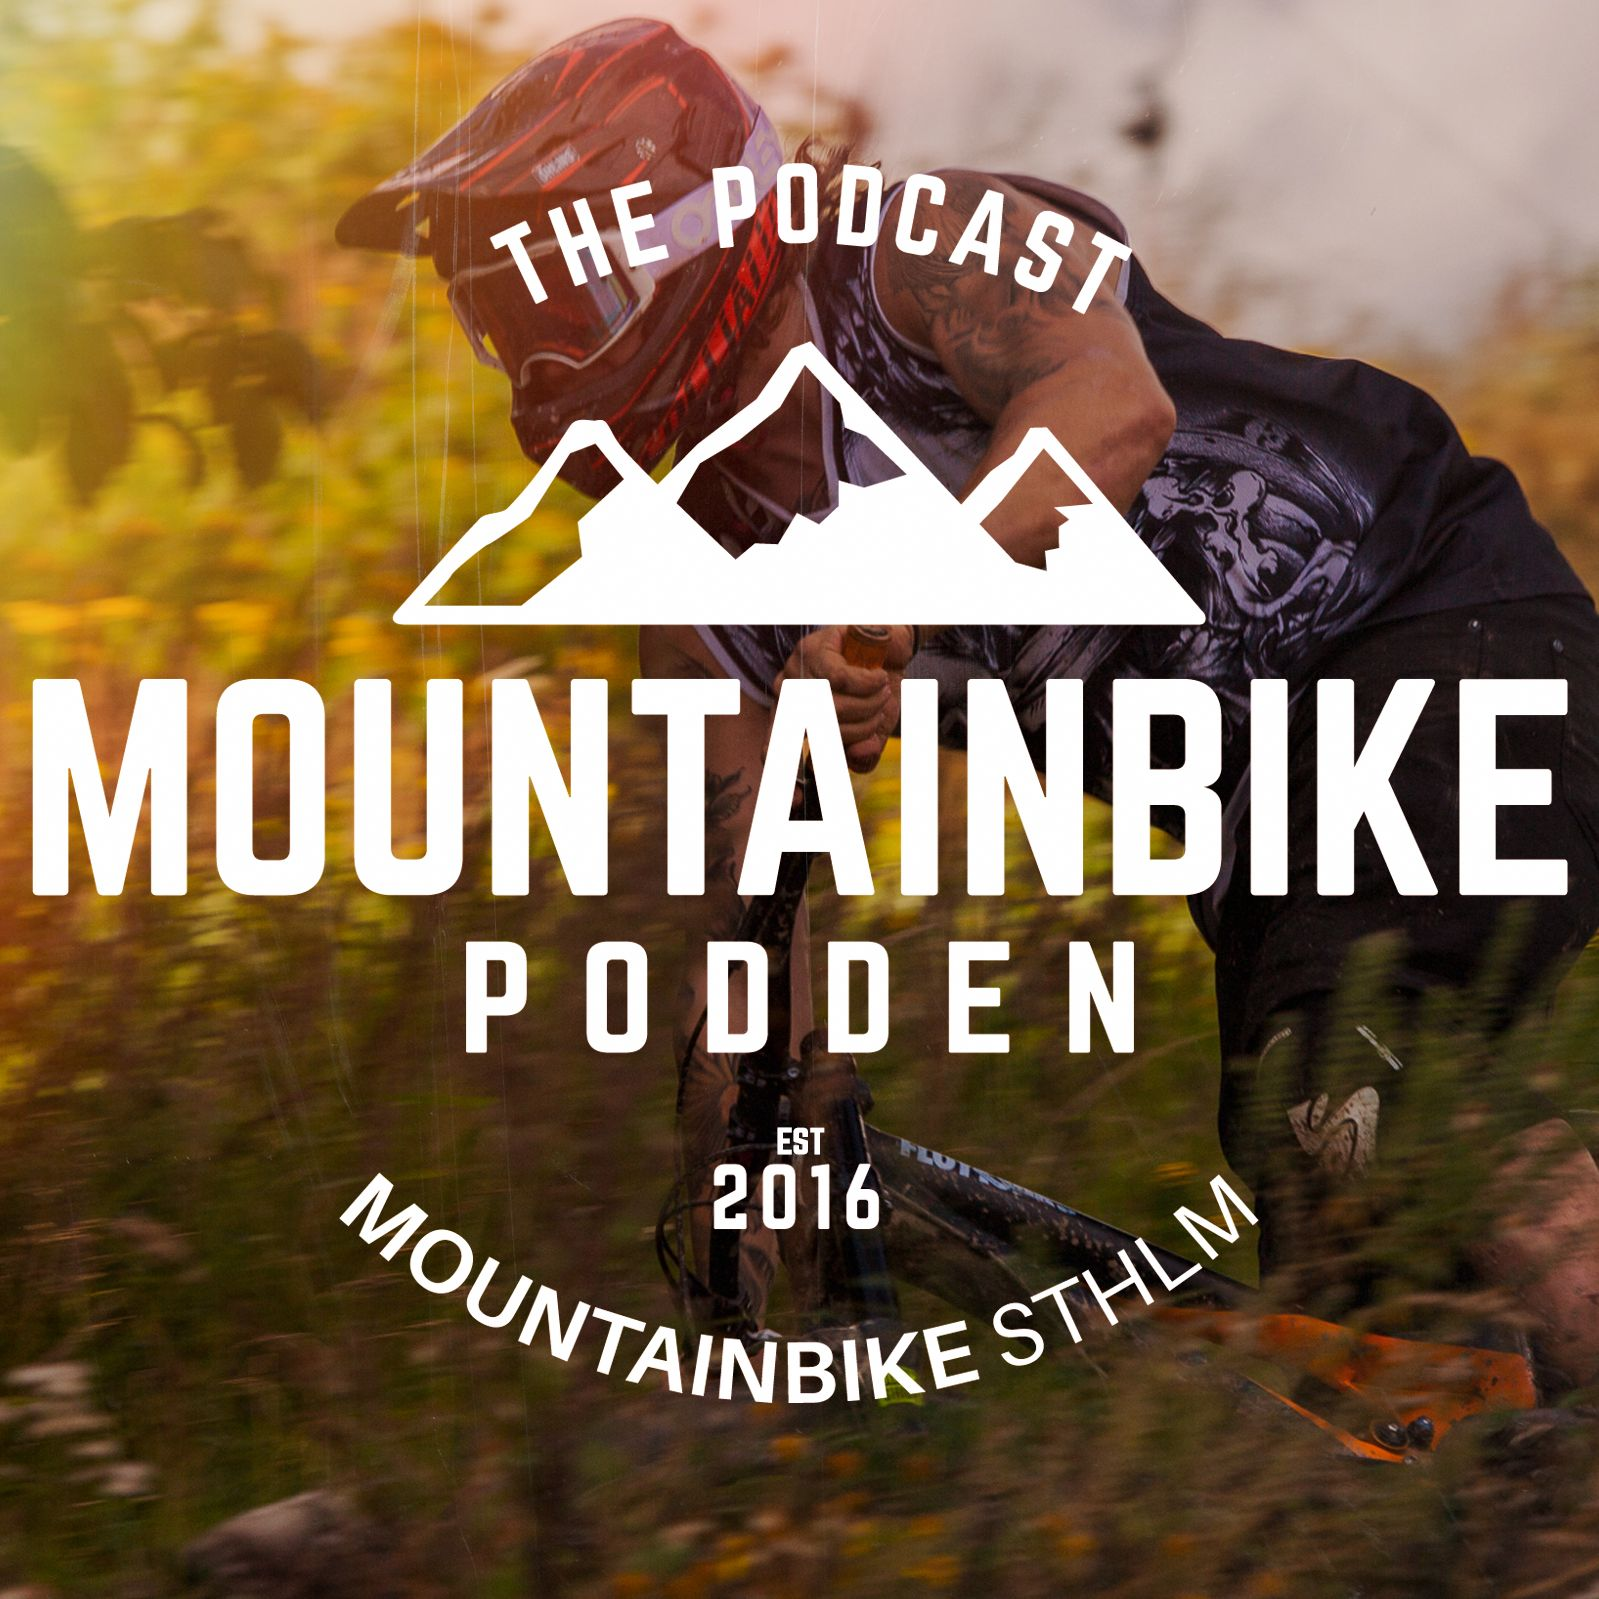 Mountainbikepodden